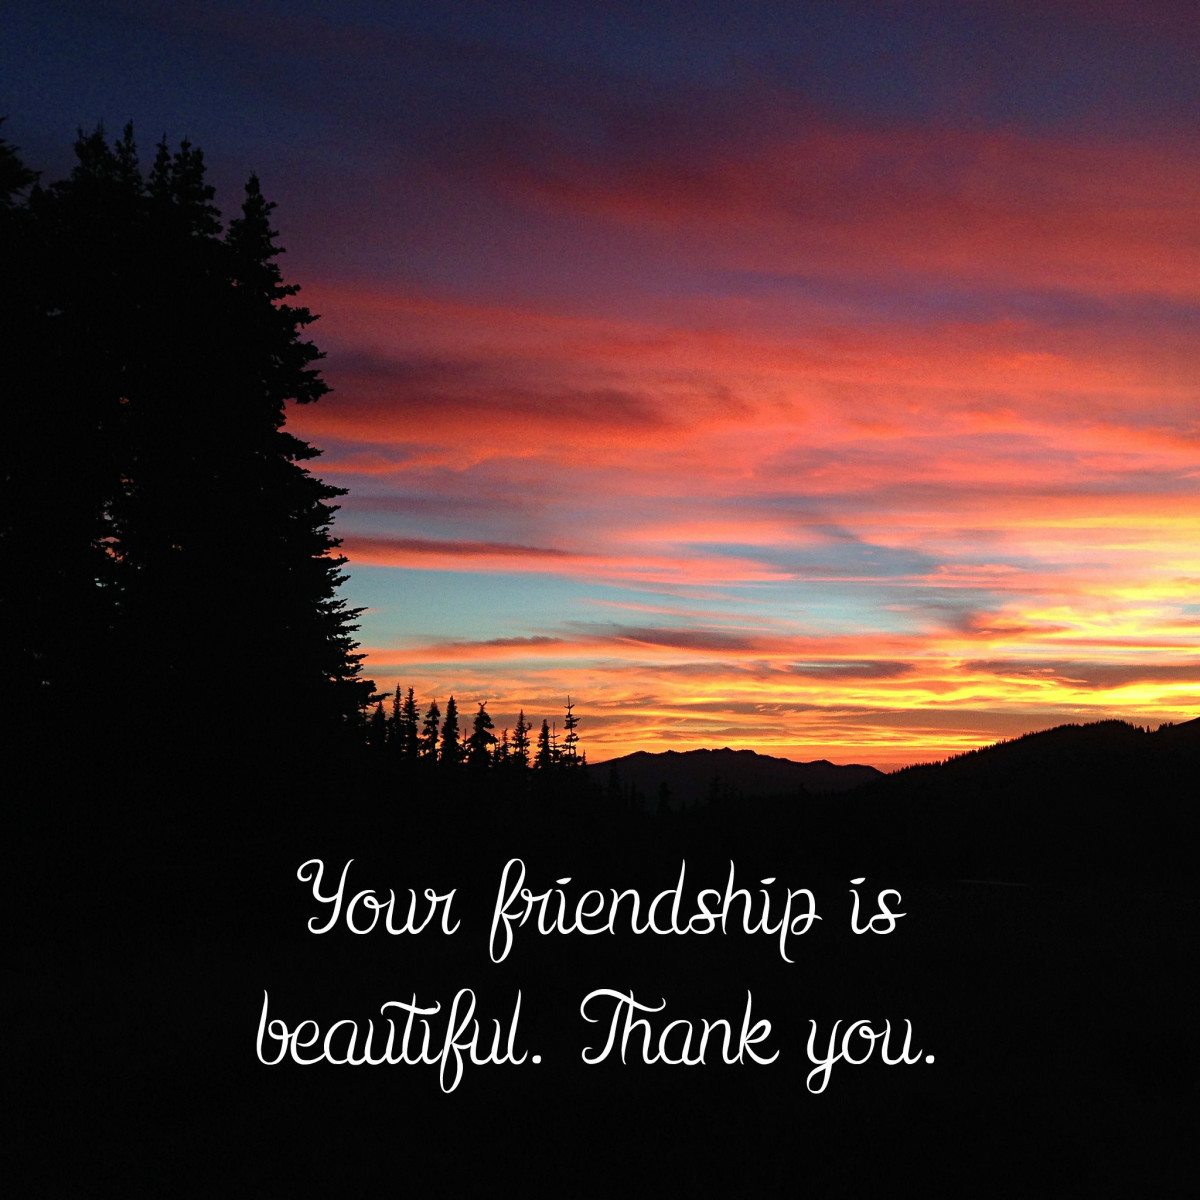 This is a great friendship card that shows how much you love your friend.